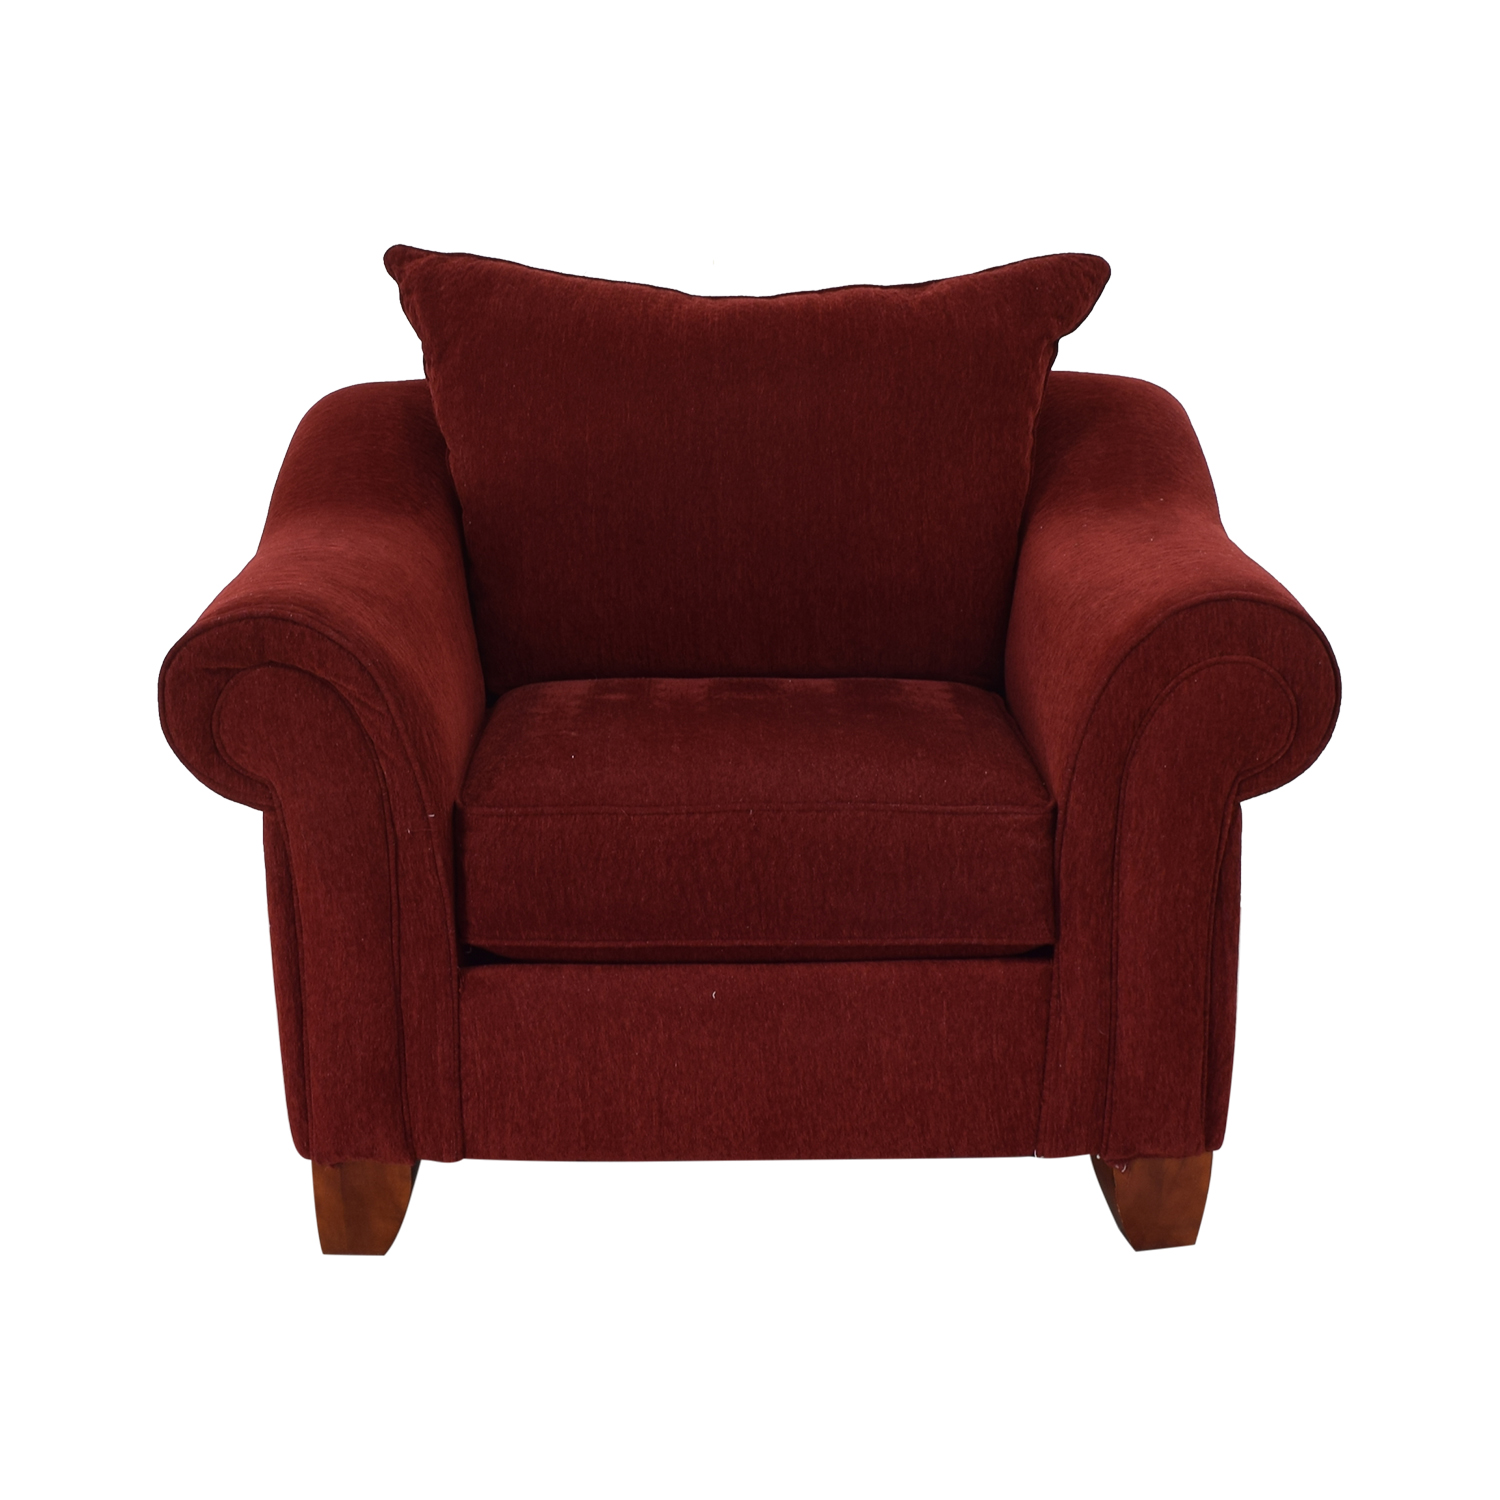 Raymour & Flanigan Red Arm Accent Chair Raymour & Flanigan